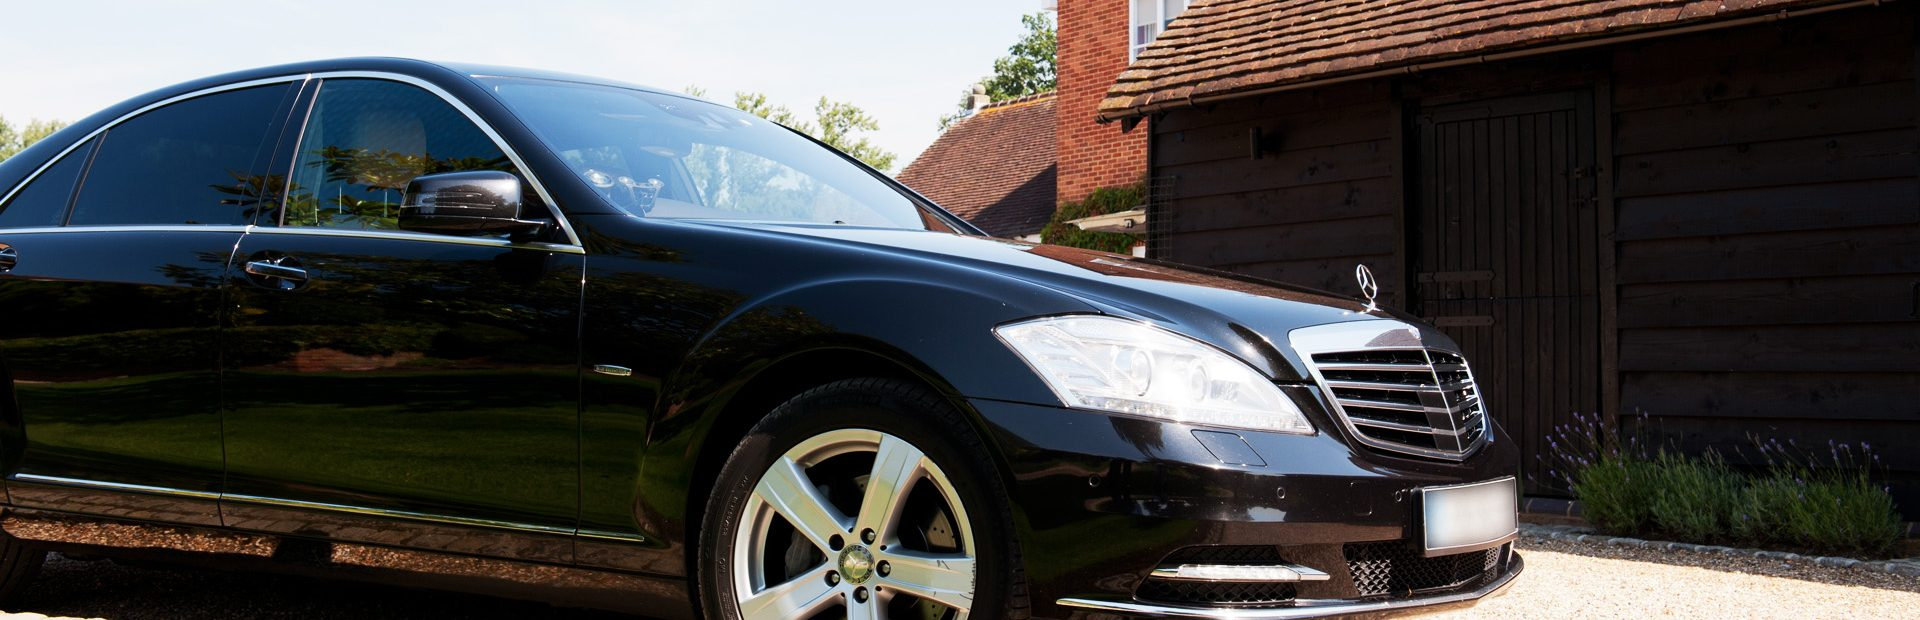 Luxury chauffeur car service in Surrey